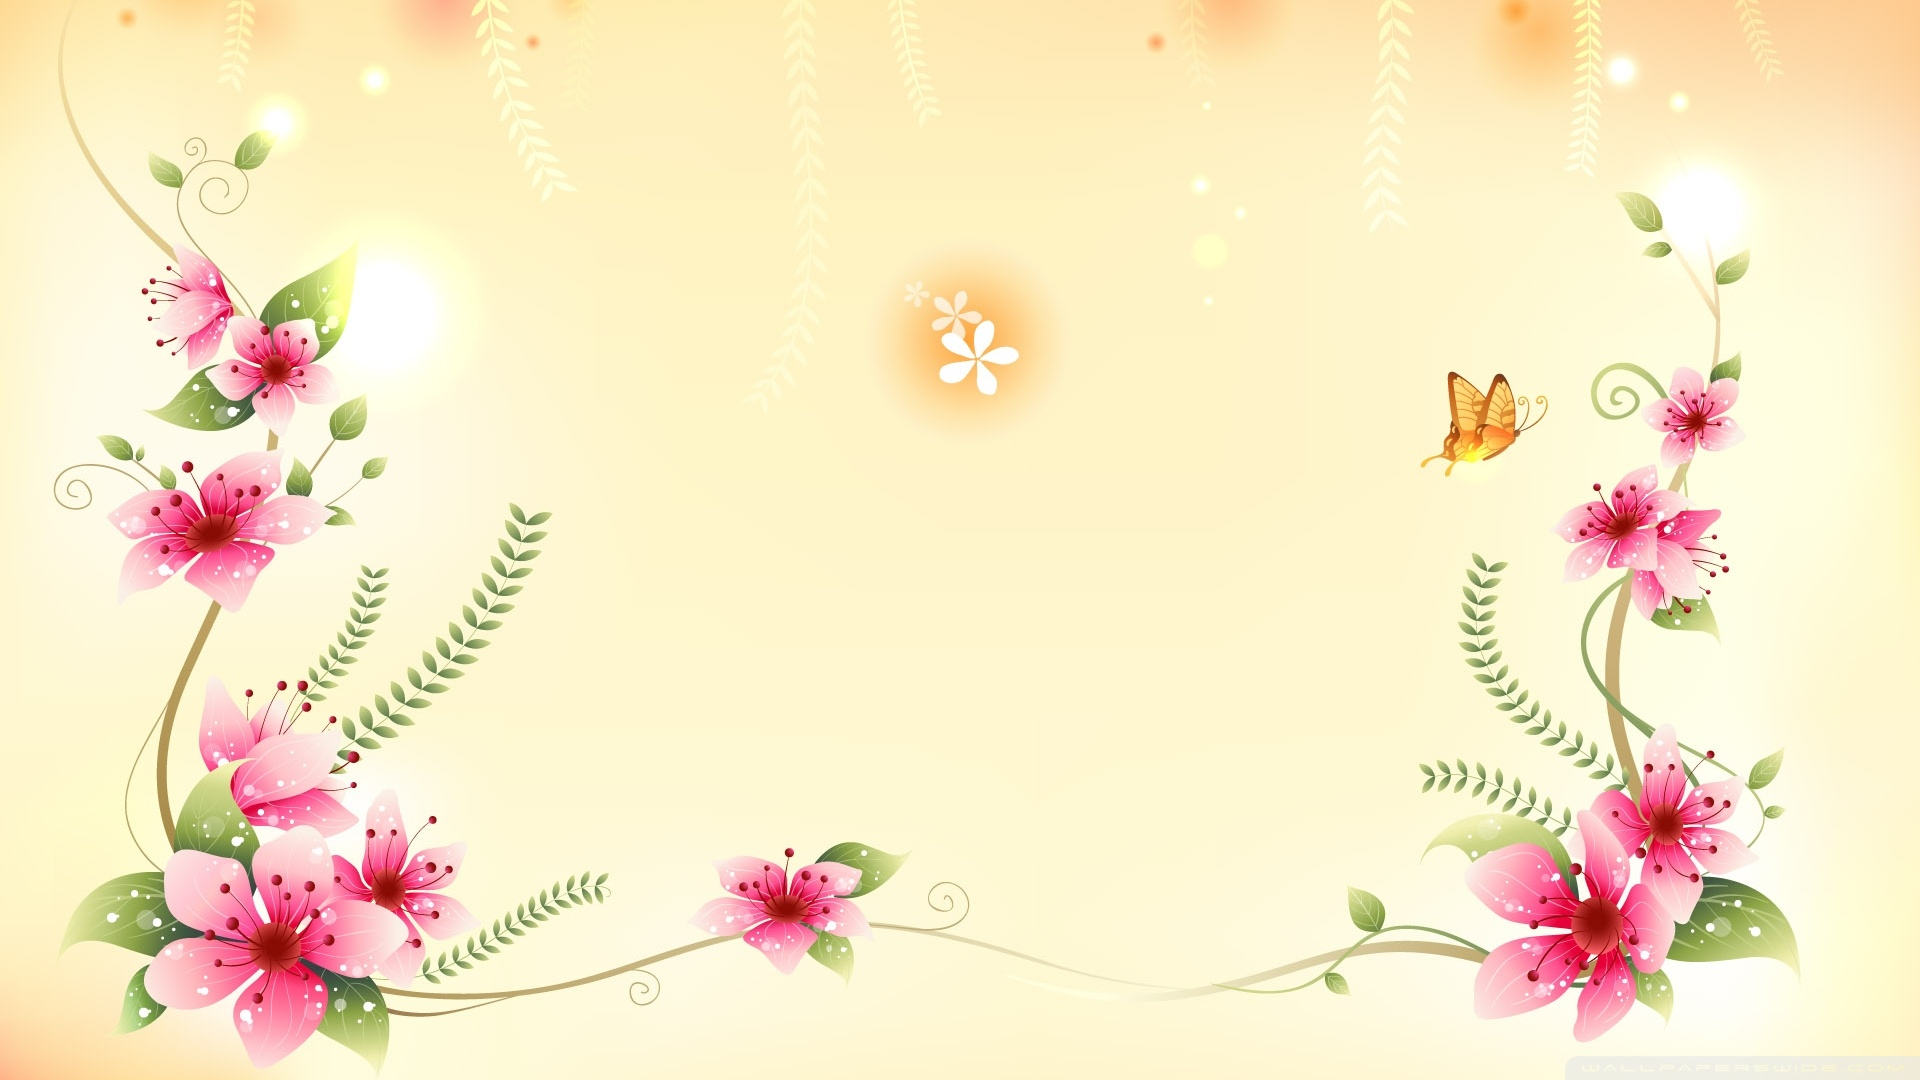 butterfly-and-flowers-illustration_00440352.jpg